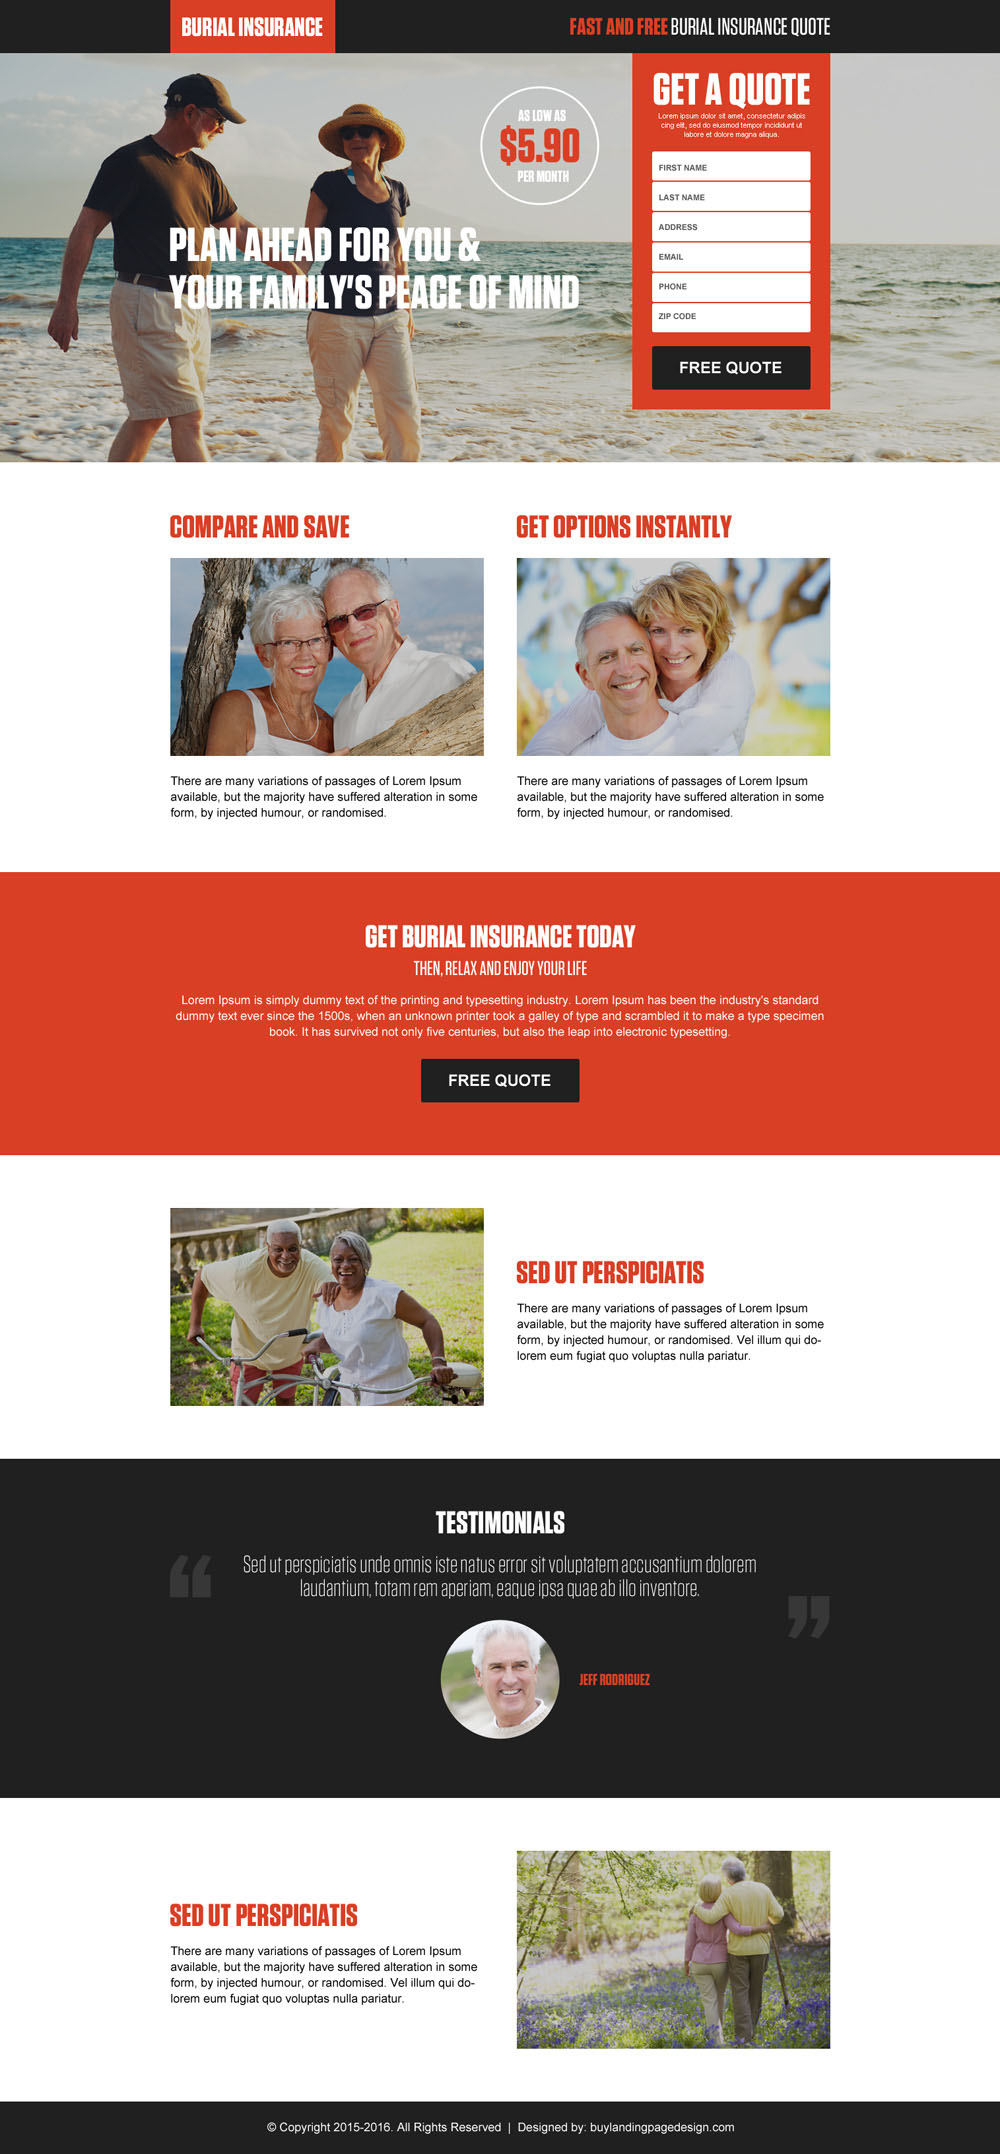 get-free-burial-insurance-quote-service-landing-page-design-001